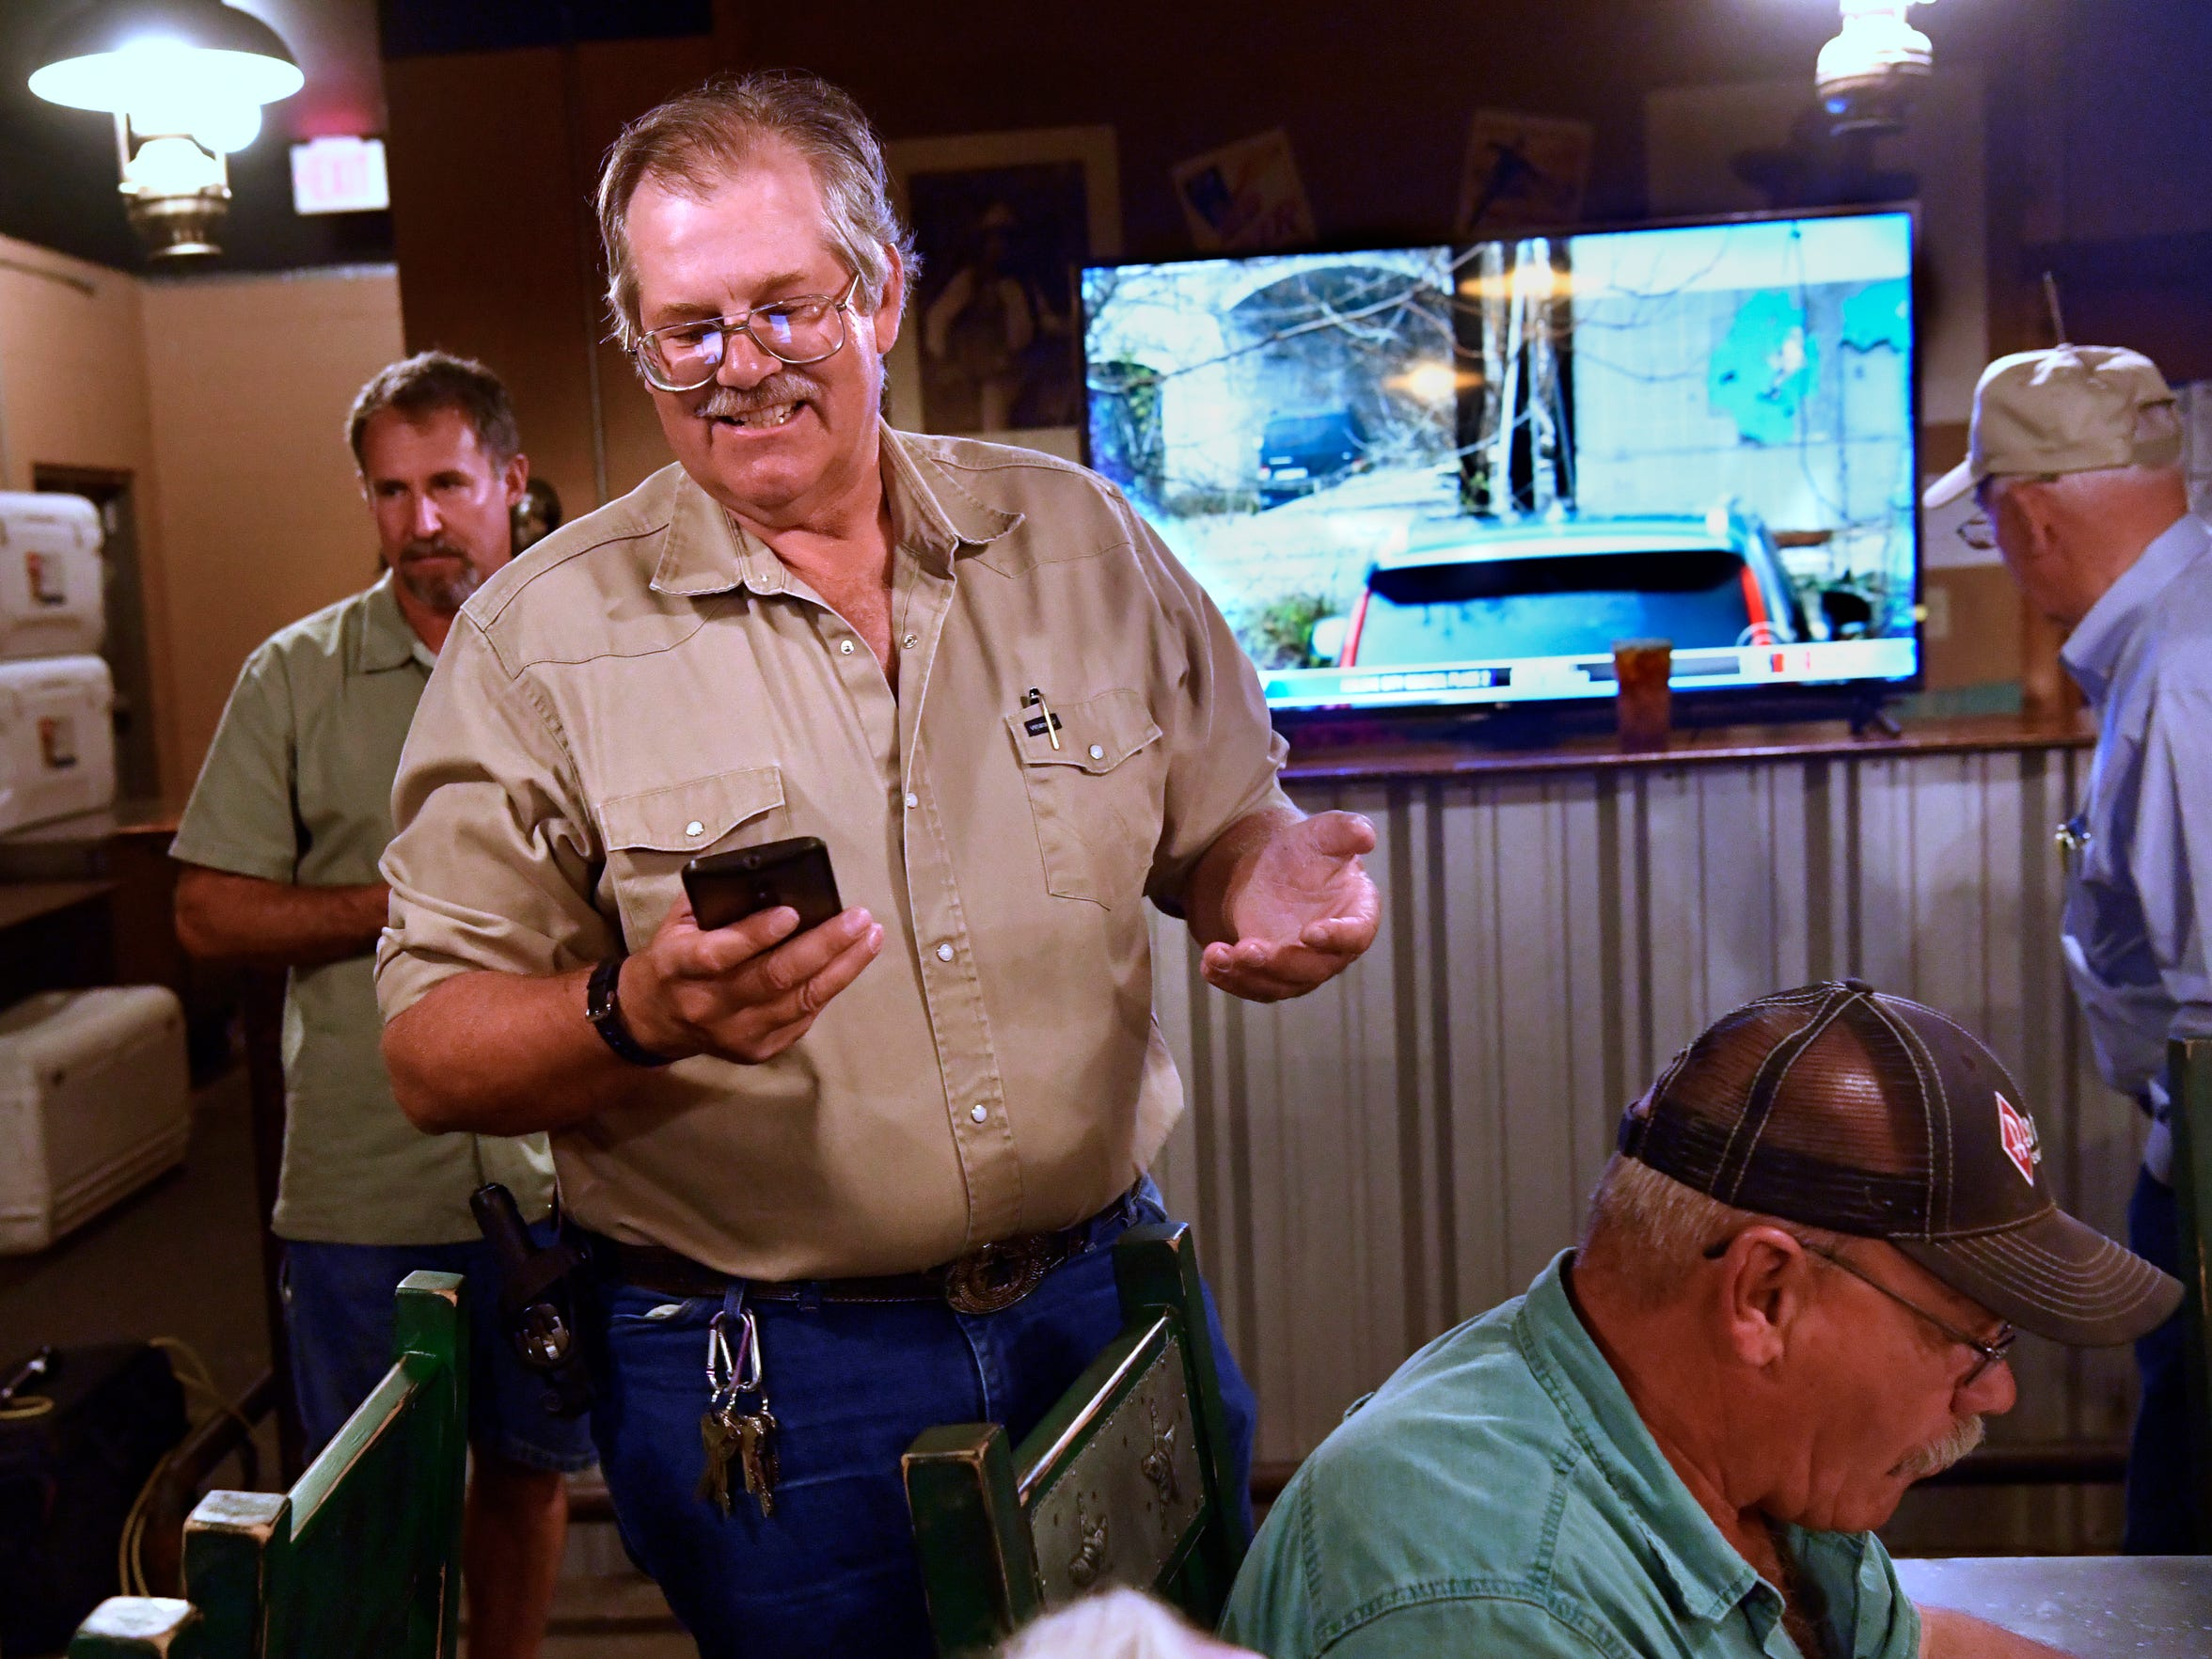 Bruce Kreitler looks at the early voting election information on his phone May 5, informing his supporters that the totals so far indicated he was behind challenger Jack Rentz. Kreitler was running for re-election on Place 2 of the Abilene City Council, Rentz and Alex Russell were also vying for the same seat. Kreitler and Rentz faced each other in a runoff, won by Rentz.